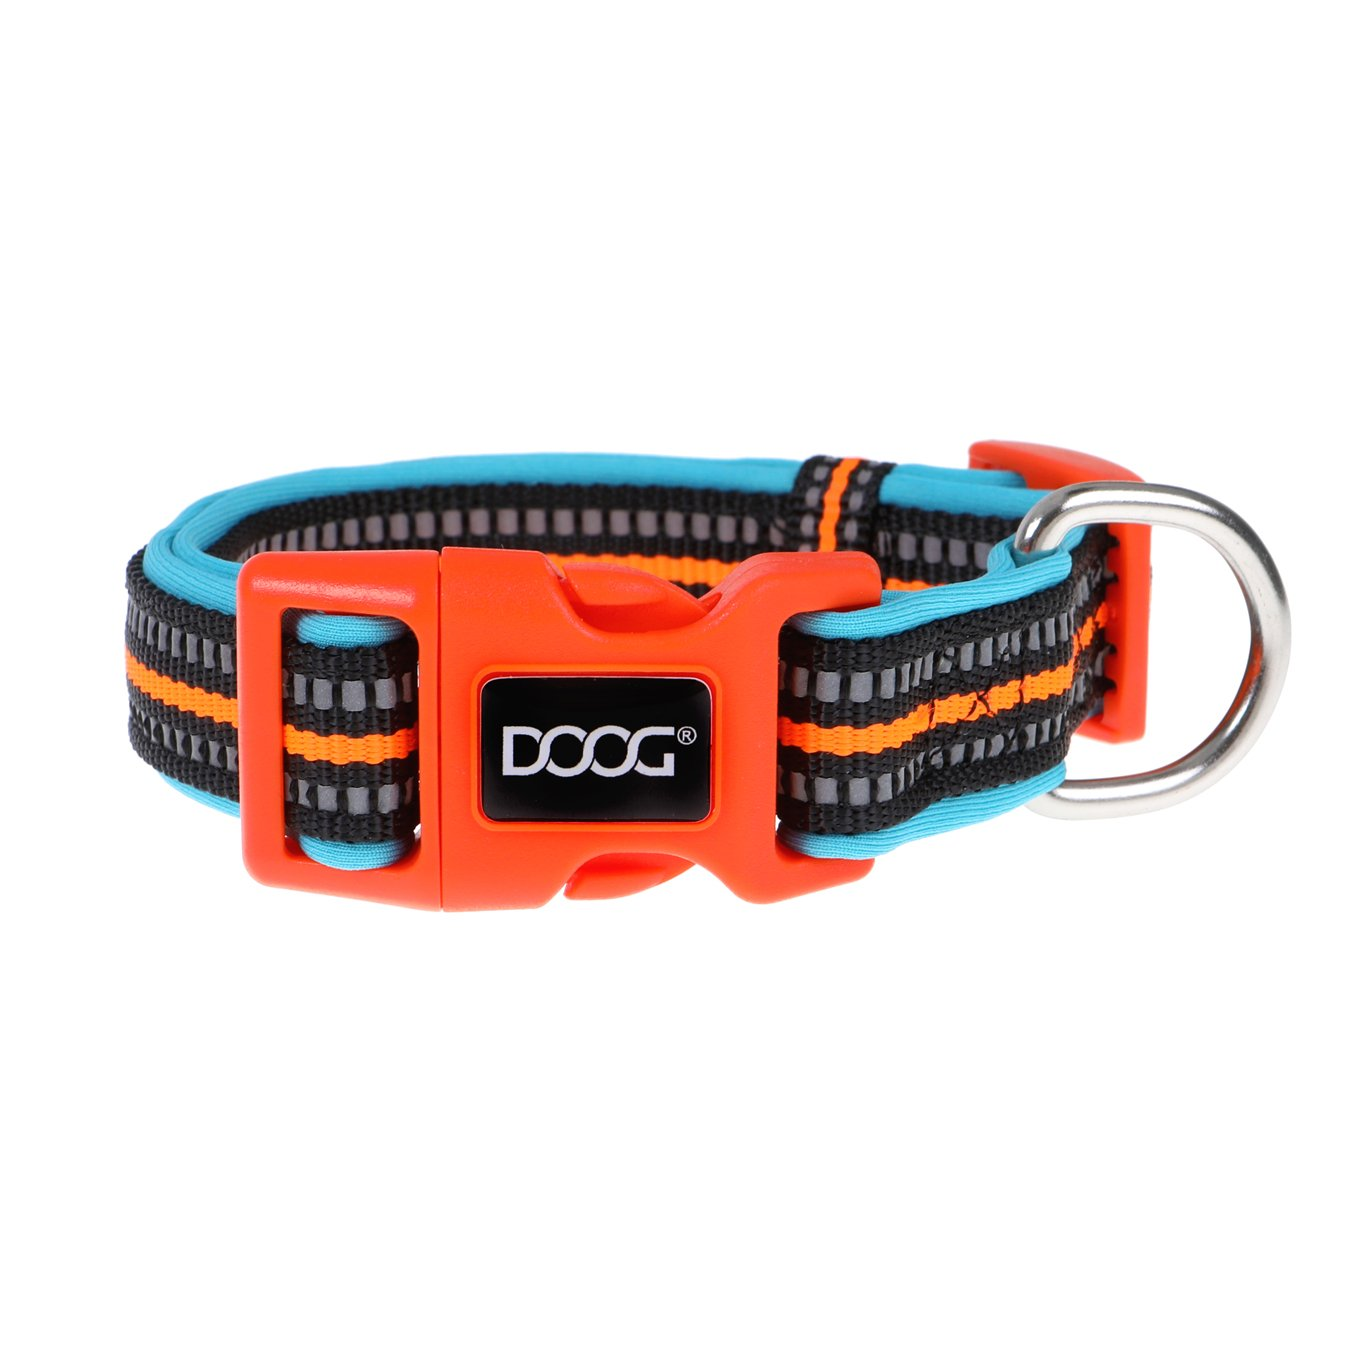 Dog Owners Outdoor Gear DOOG7971